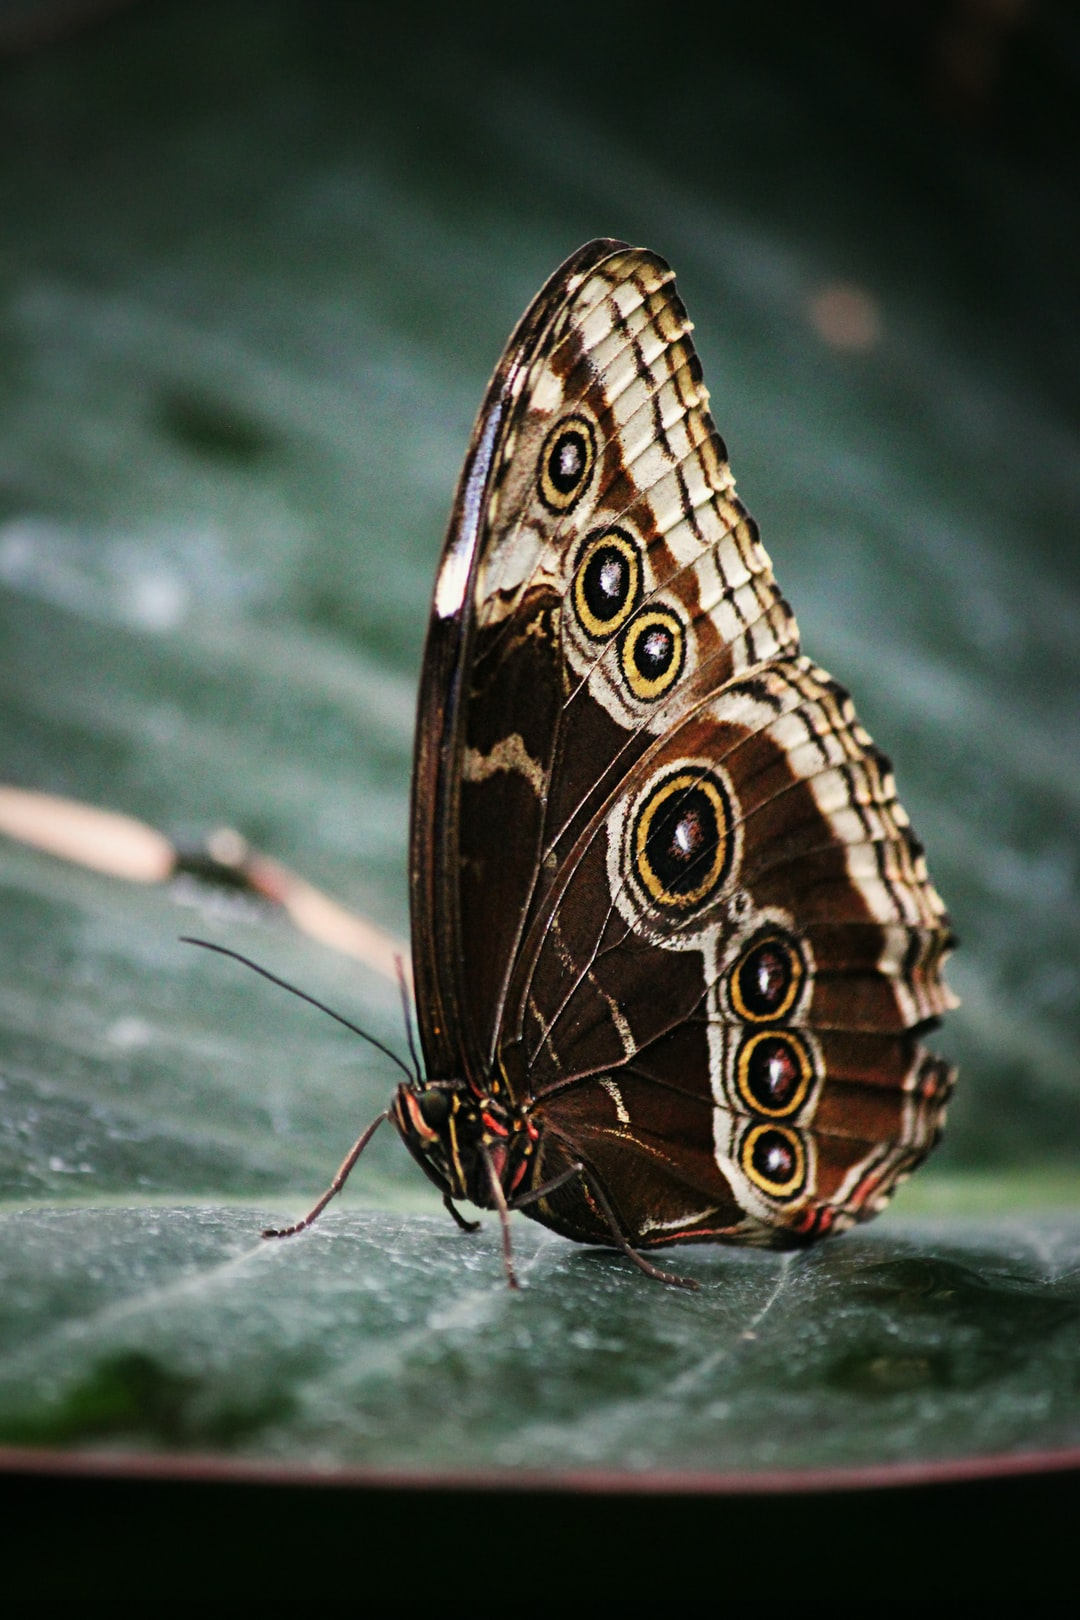 A morpho butterfly sits on a leaf.